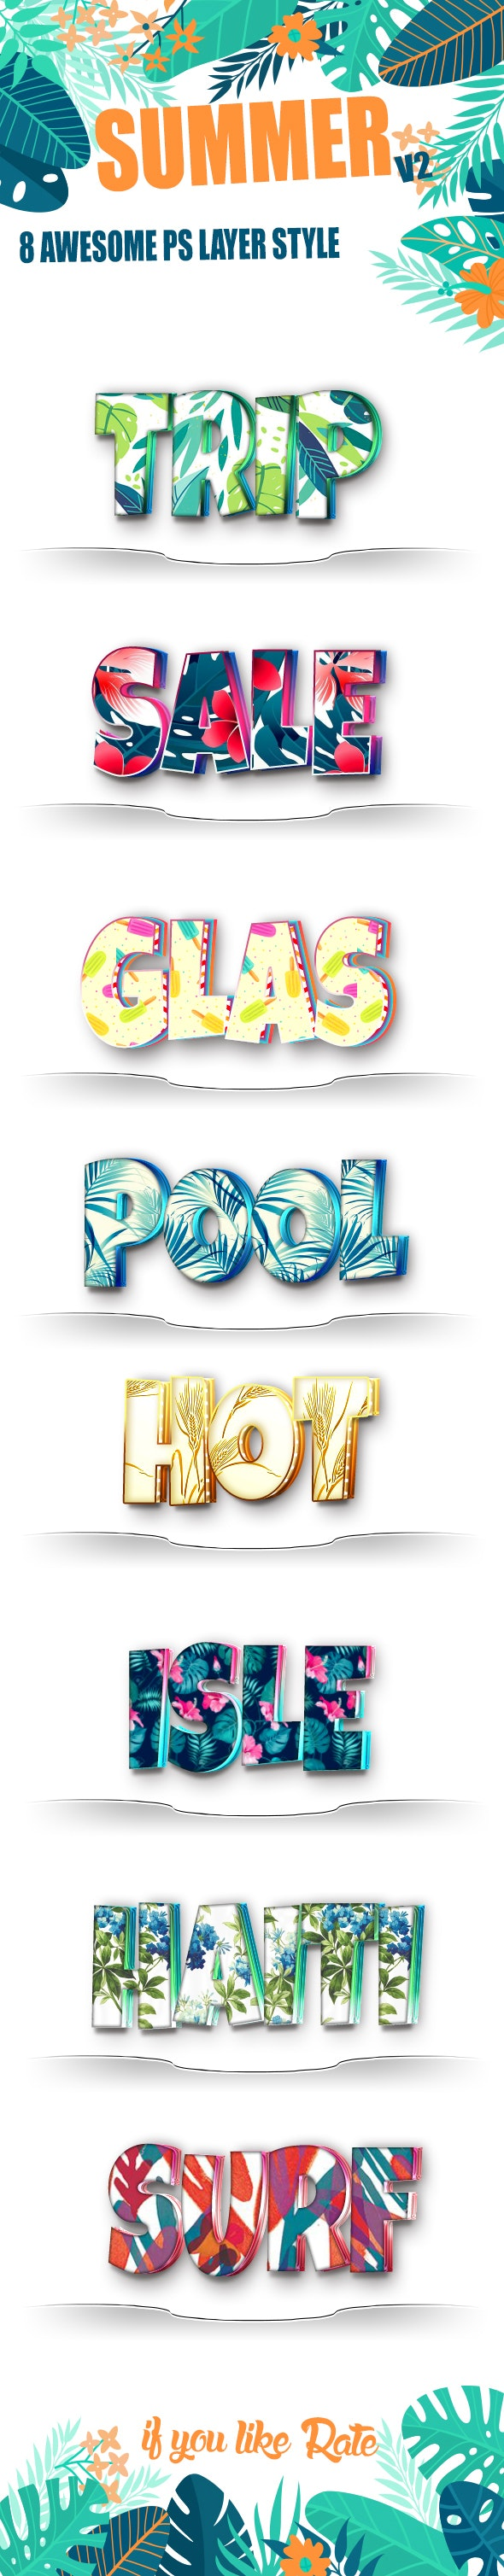 Summer Text Layer Style v2 - Text Effects Styles